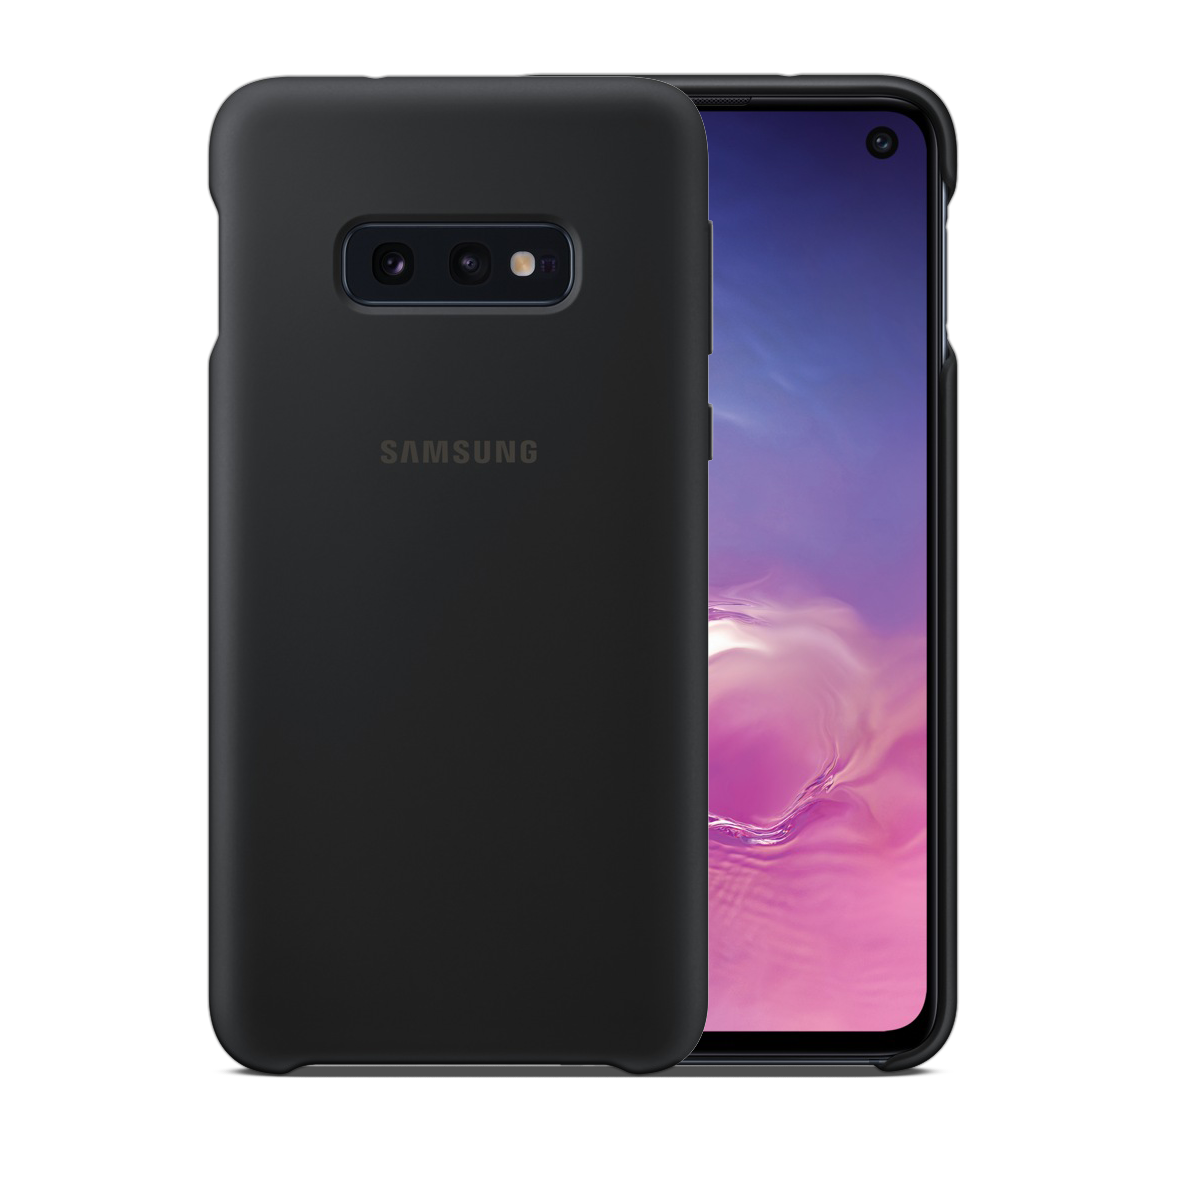 Samsung Silicon Cover for Galaxy S10e - Black